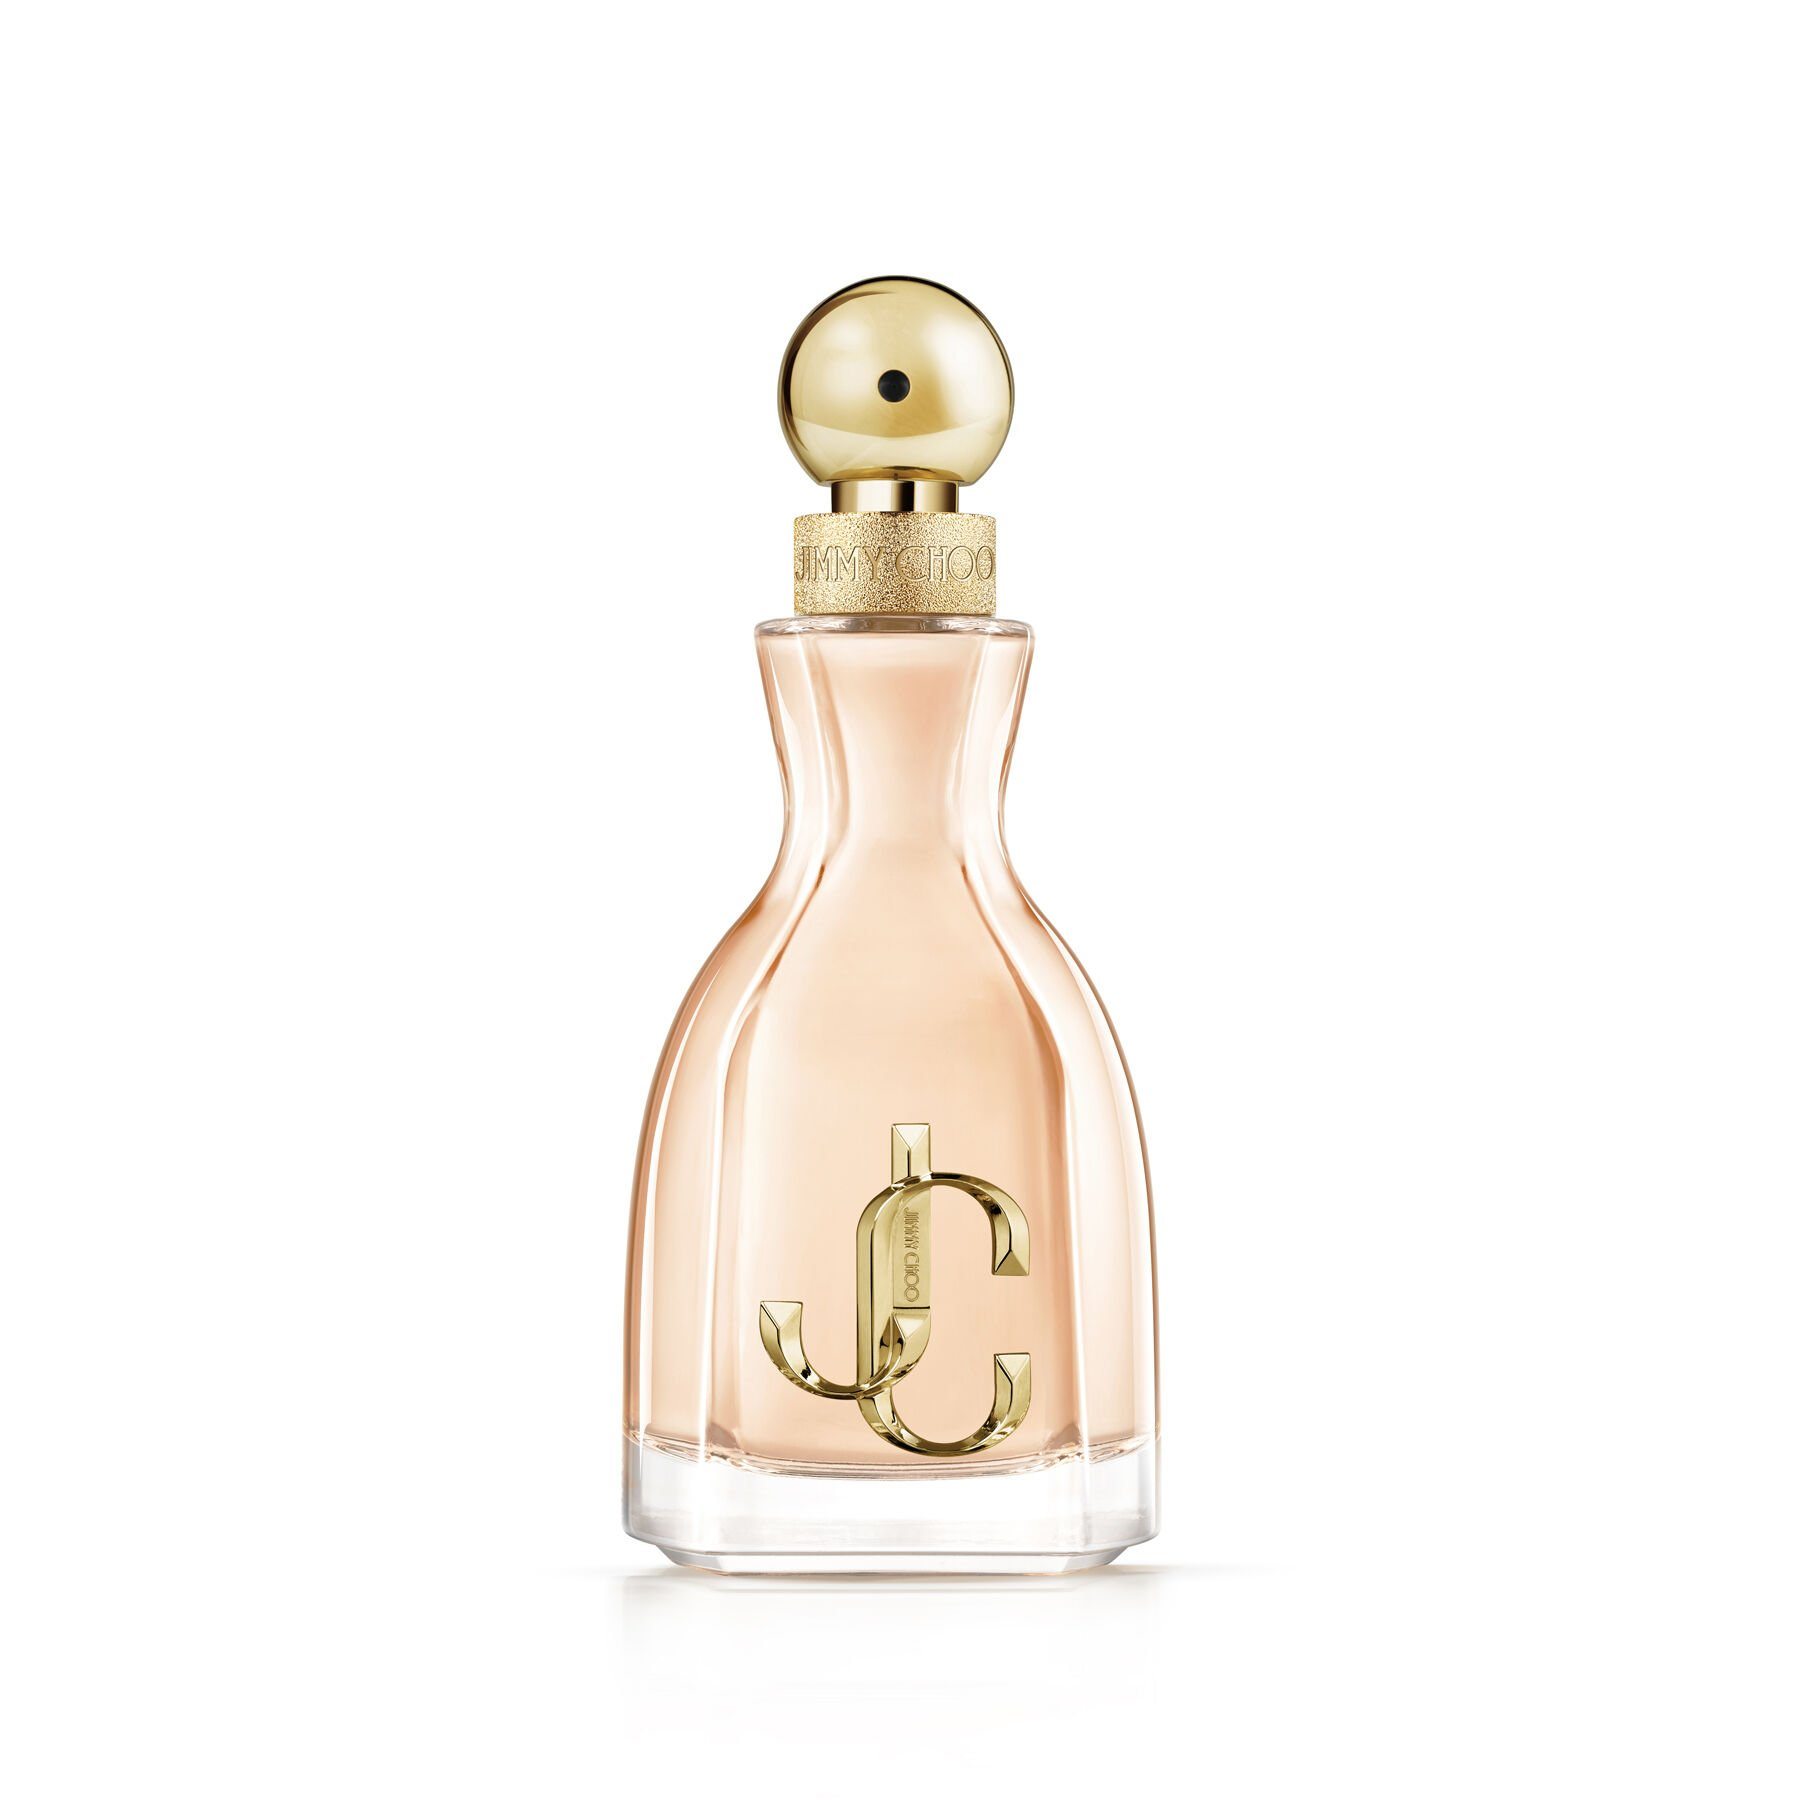 I WANT CHOO EDP 60ML - Jimmy Choo I Want Choo Eau De Parfum 60ml